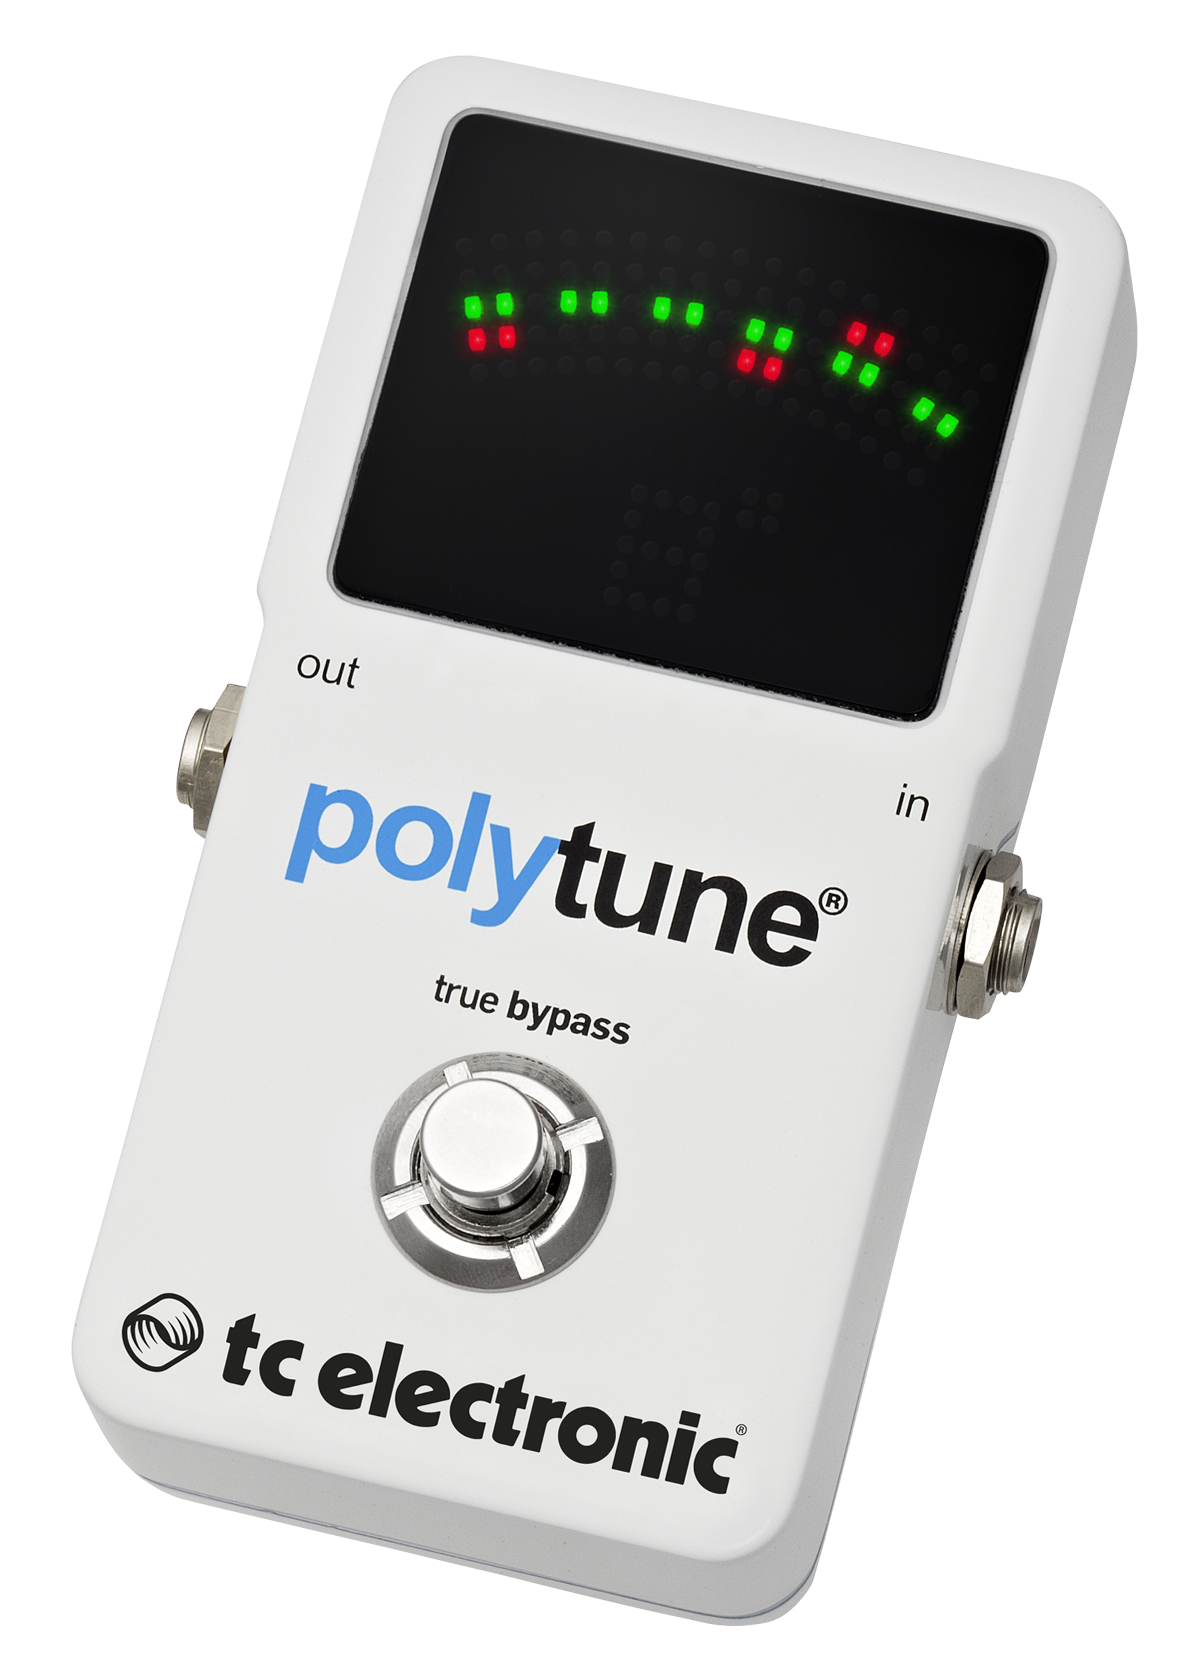 tc electronic polytune 2 polyphonic led guitar tuner pedal music machine nz. Black Bedroom Furniture Sets. Home Design Ideas